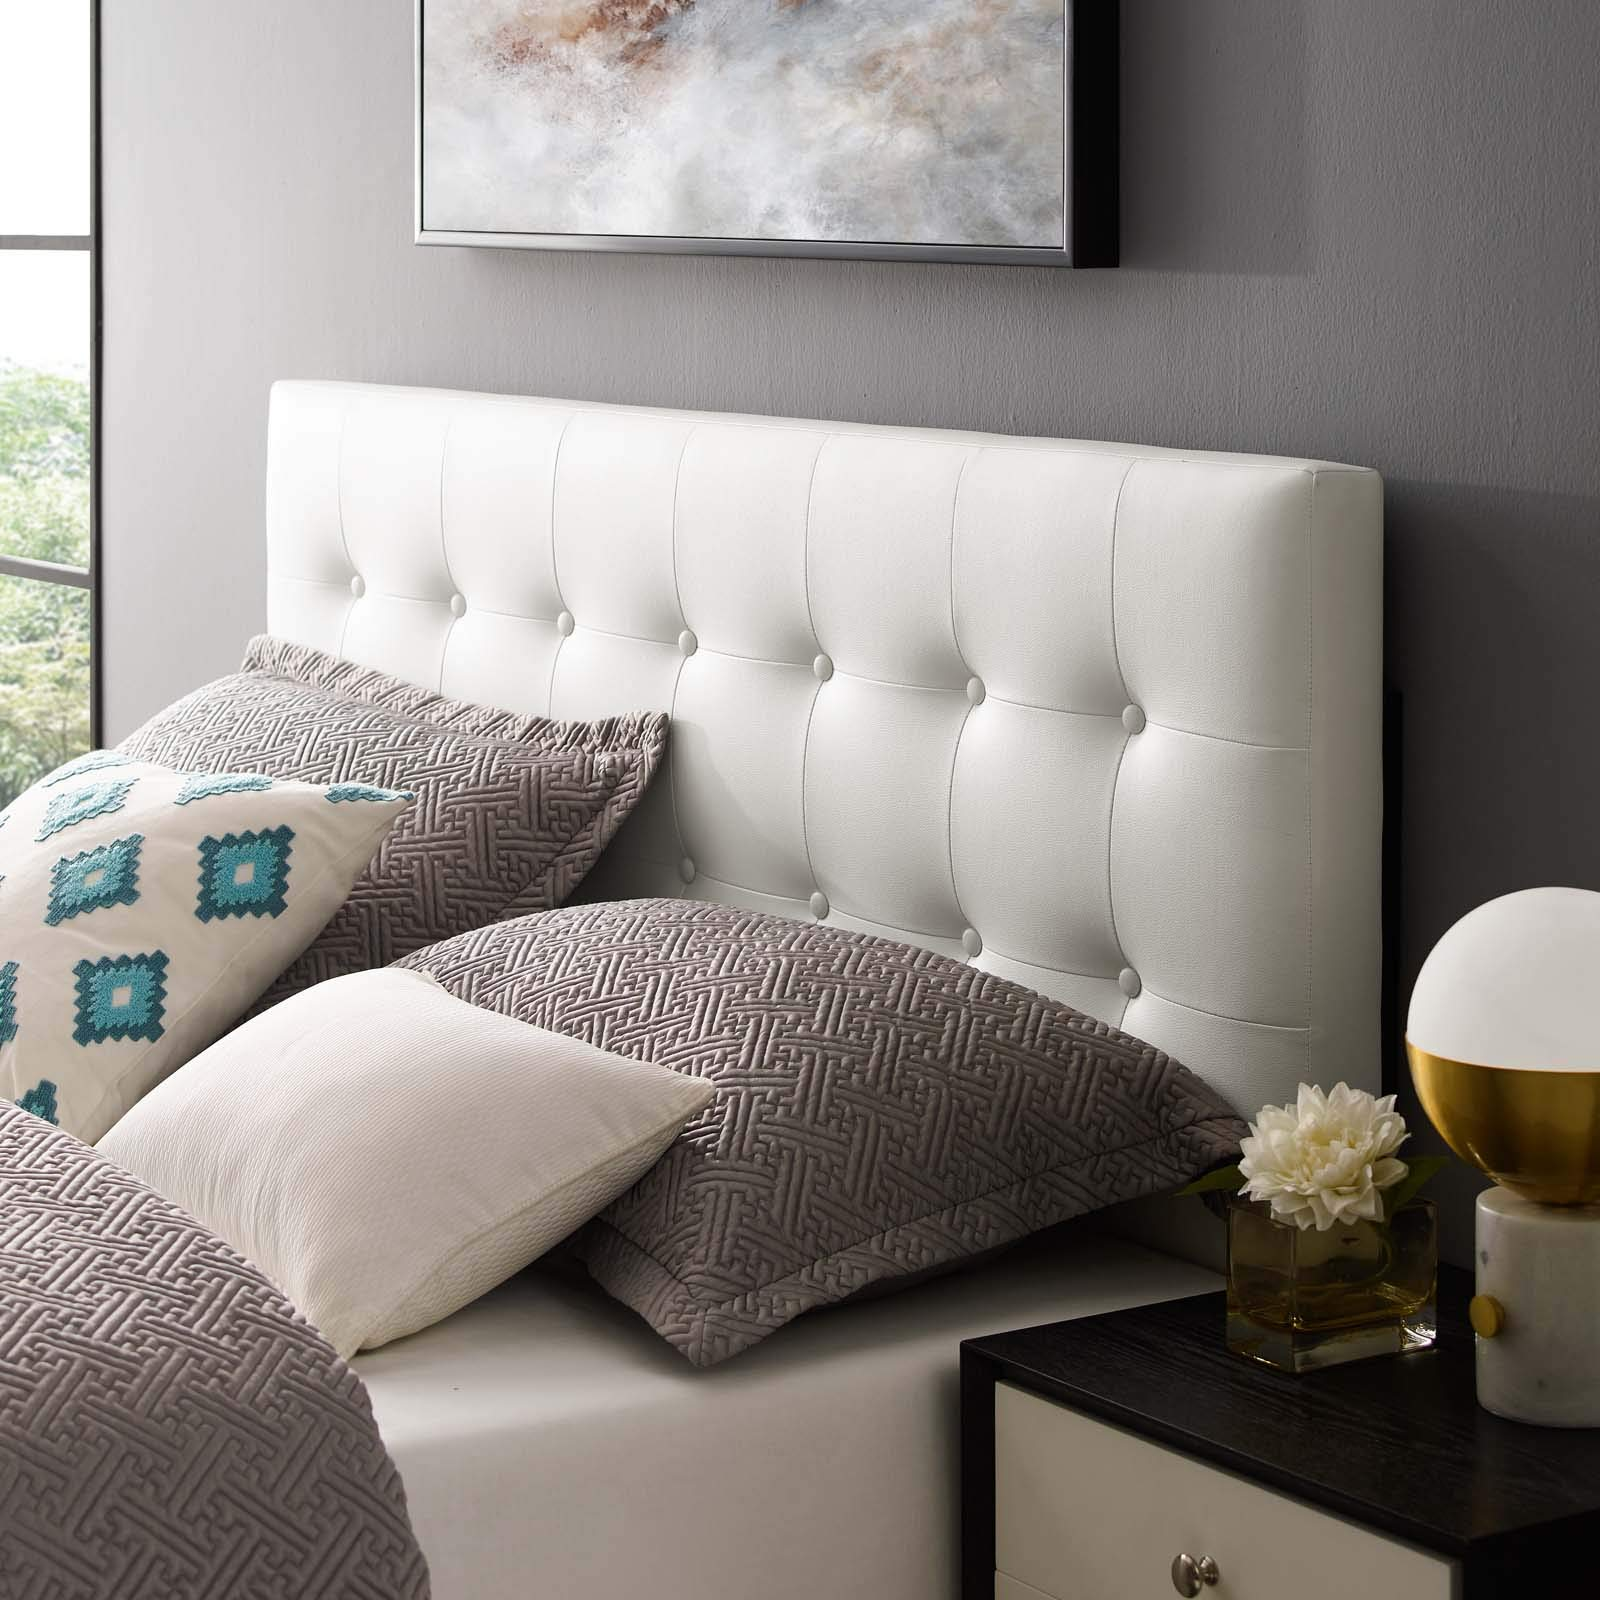 Modway Emily Tufted Button Faux Leather Upholstered Full Headboard in White by Modway